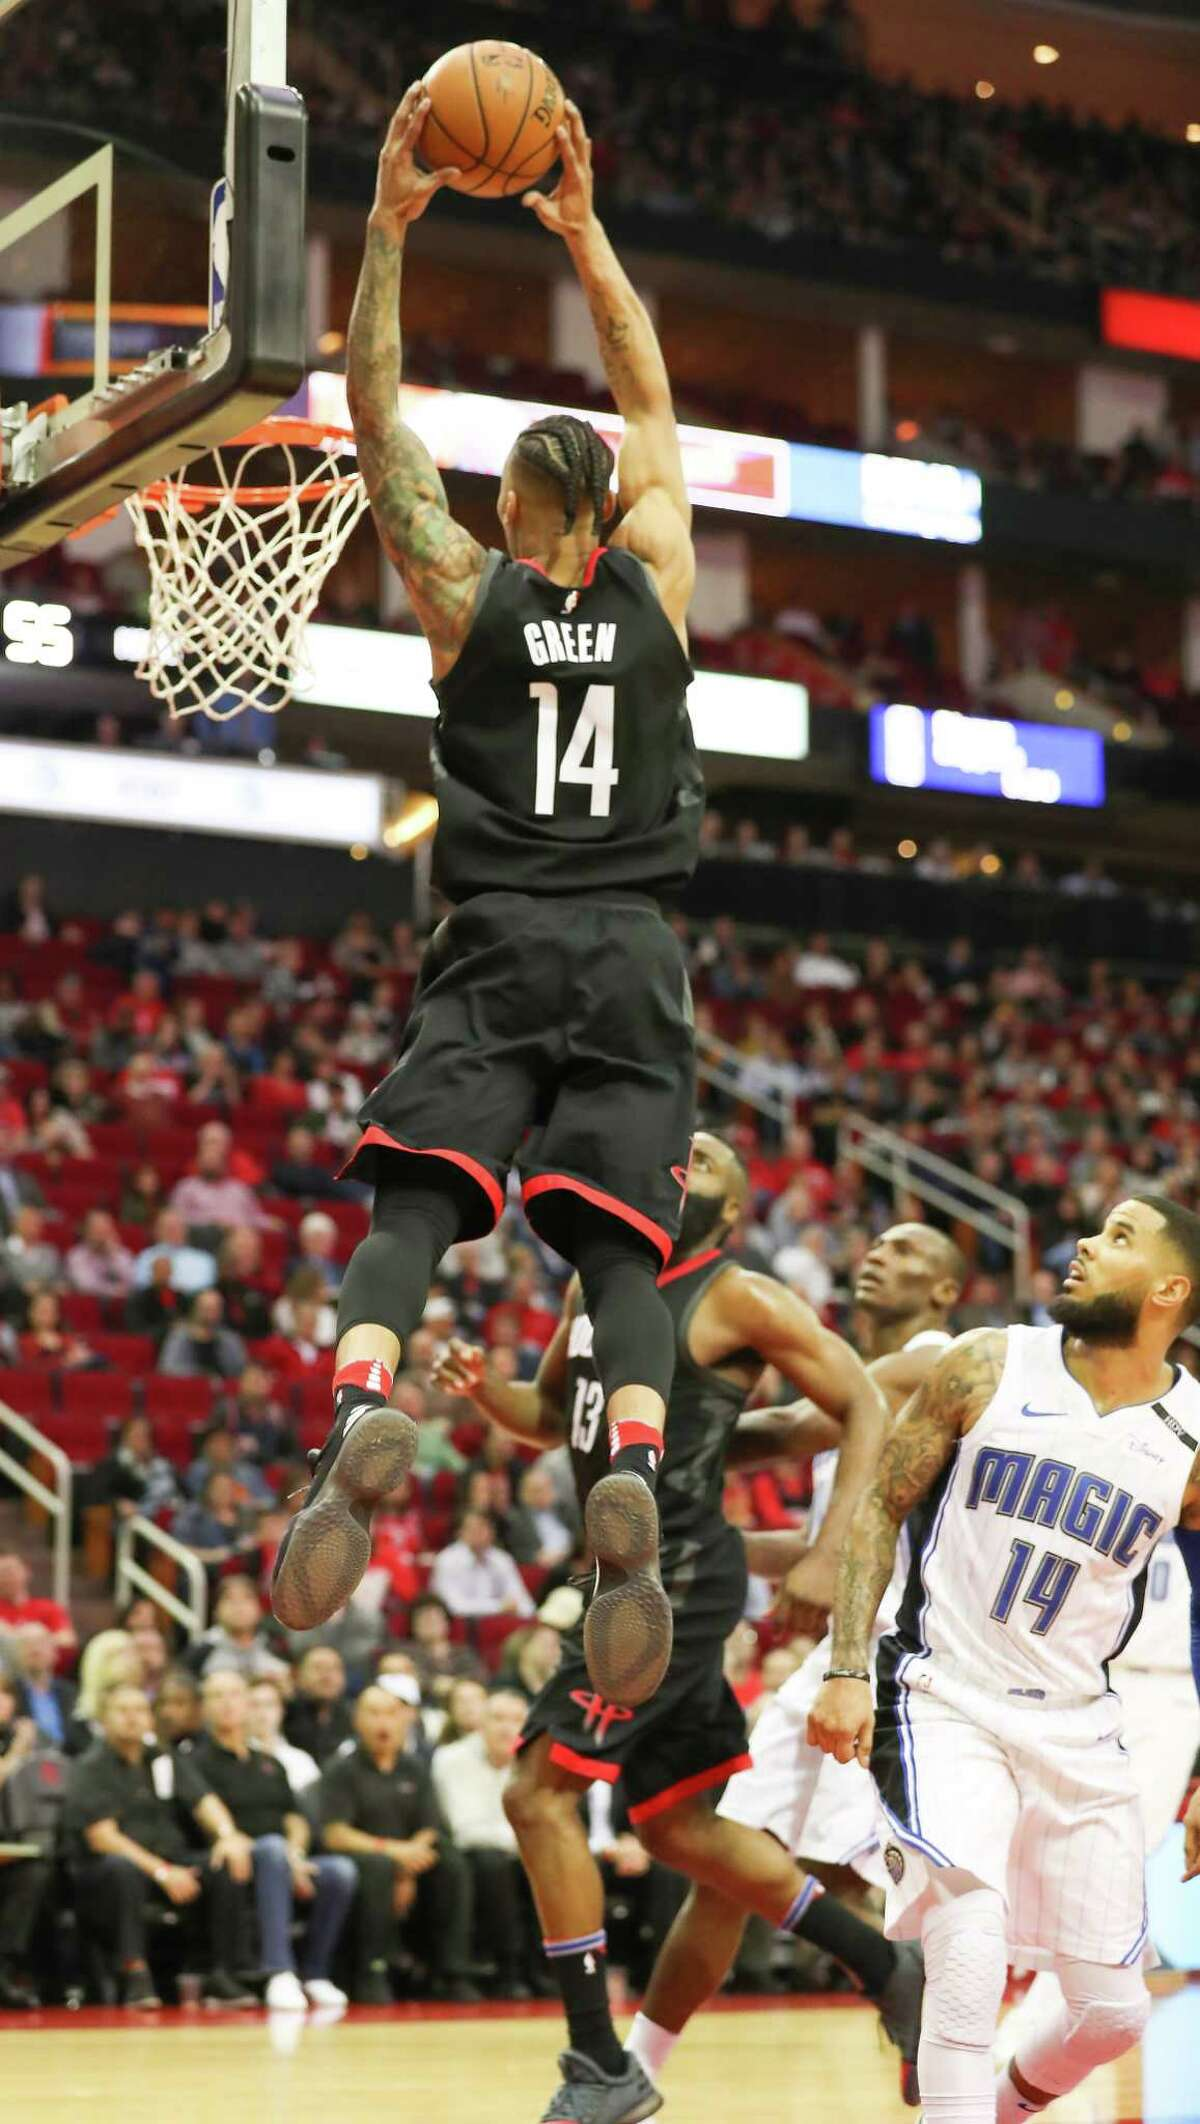 Houston Rockets guard Gerald Green (14) slams a pass from guard James Harden (13) in the 2nd-quarter of an NBA basketball game at Toyota Center on Tuesday, Jan. 30, 2018, in Houston.